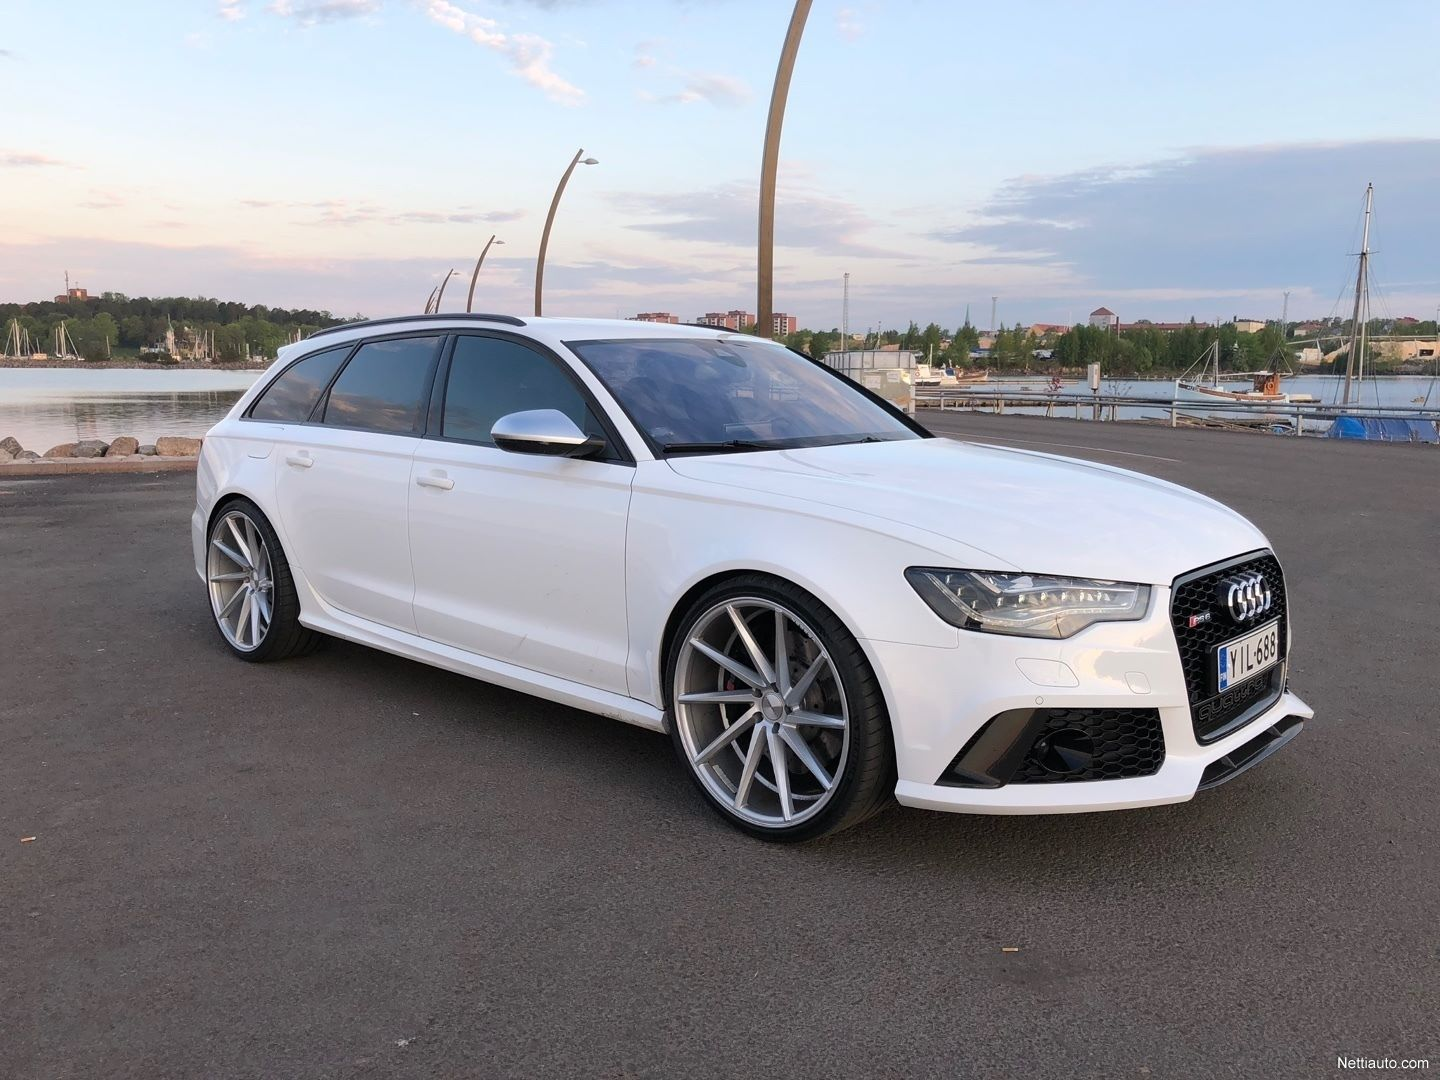 Audi-RS6-Avant-Kimi-Raikkonen-for-sale-1